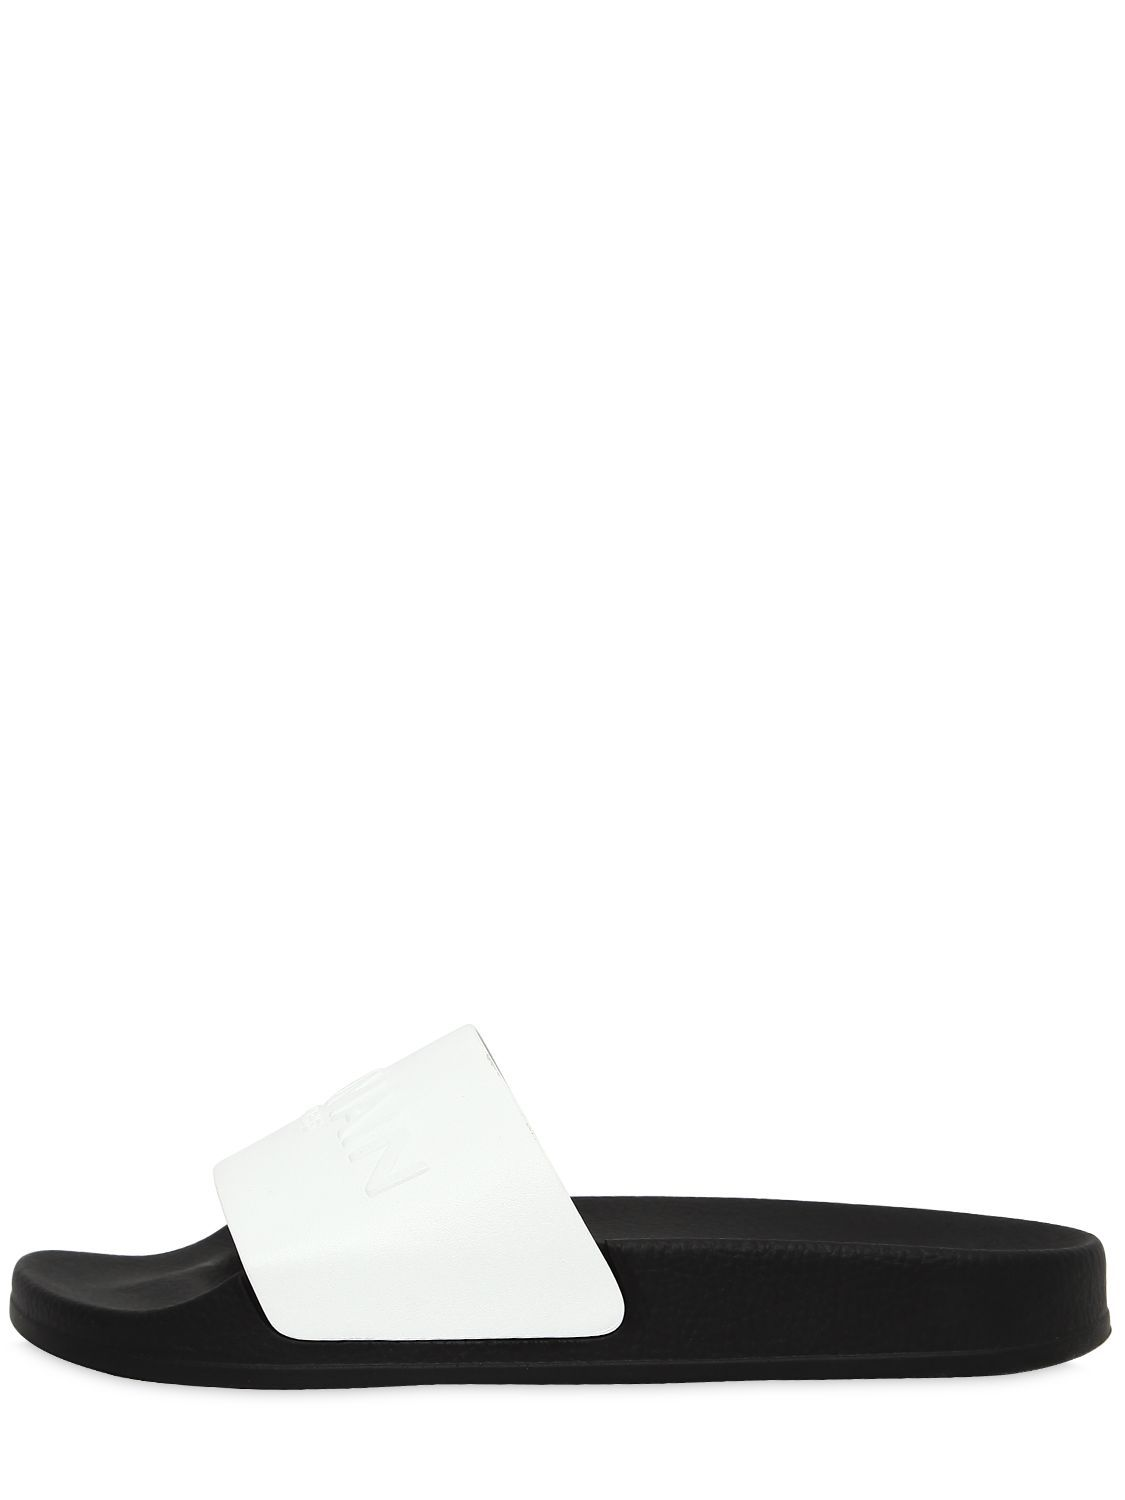 2d5a543e BALMAIN CALYPSO LOGO LEATHER SLIDE SANDALS. #balmain #shoes ...